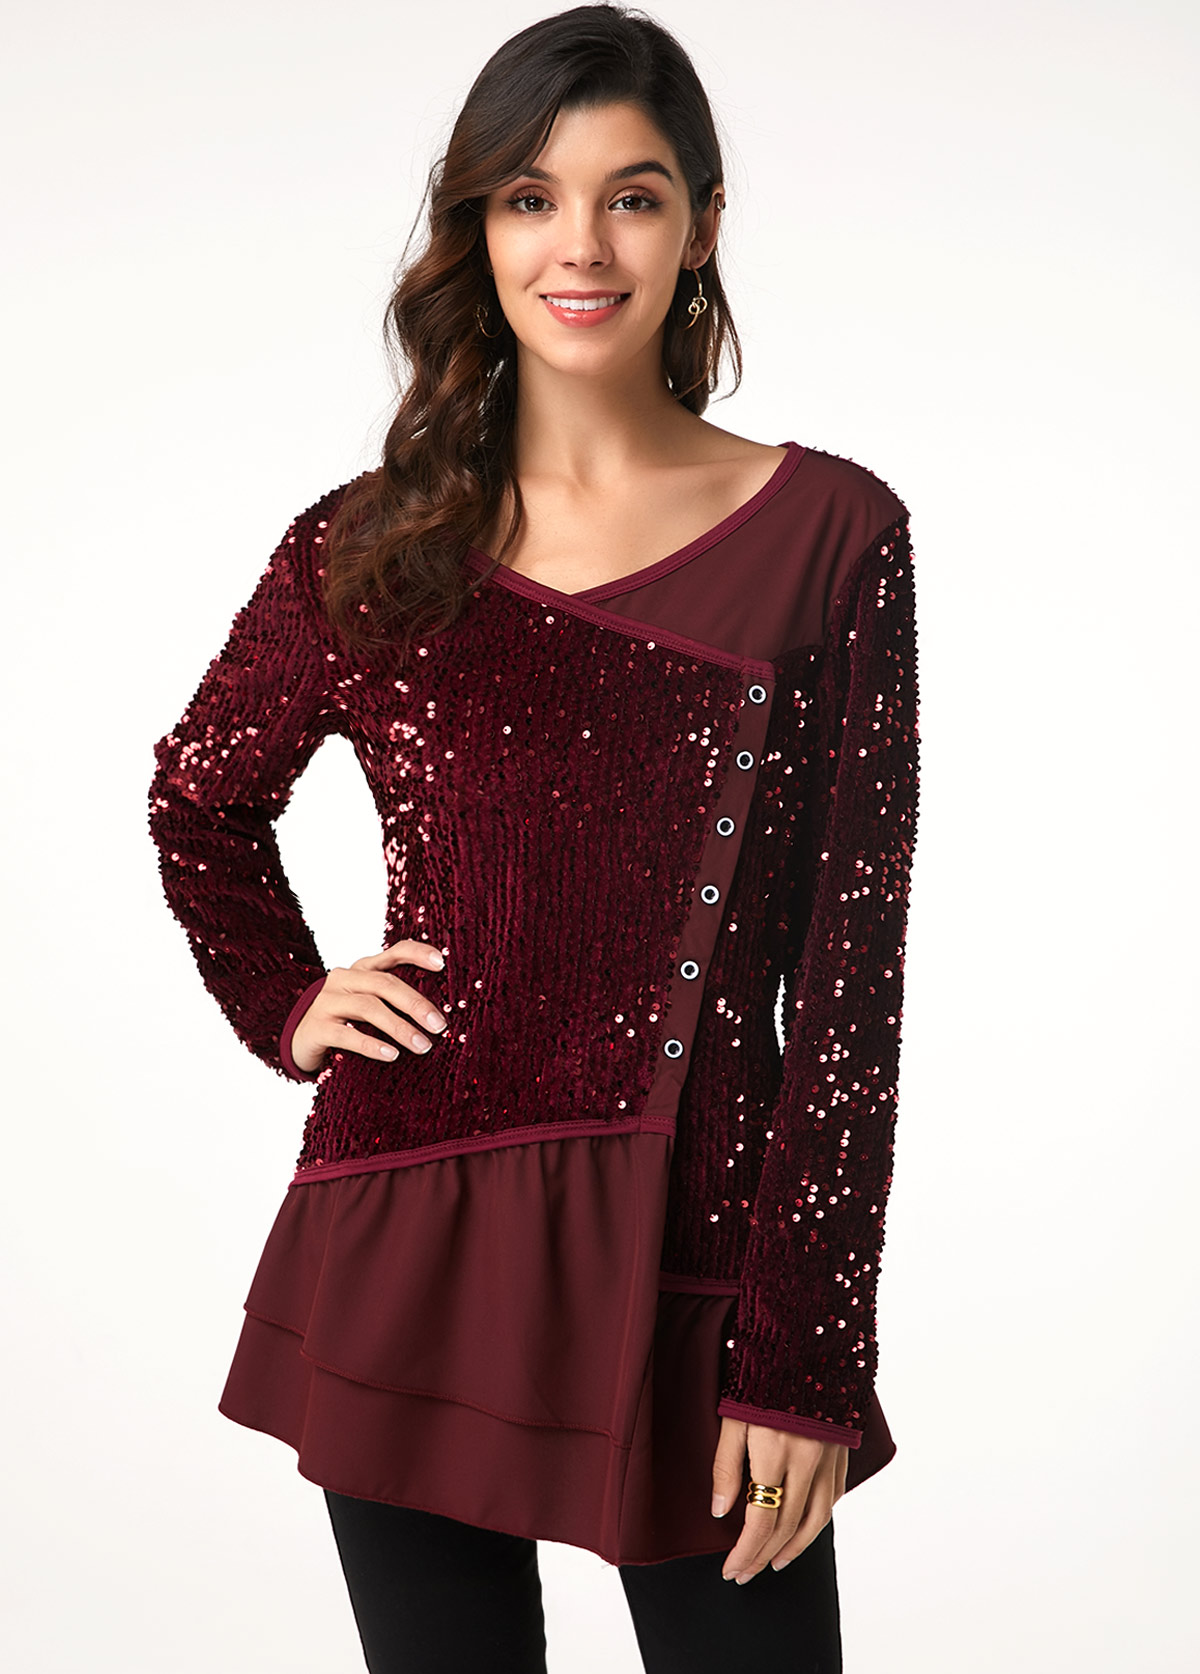 Long Sleeve Sequin Embellished Button Detail T Shirt